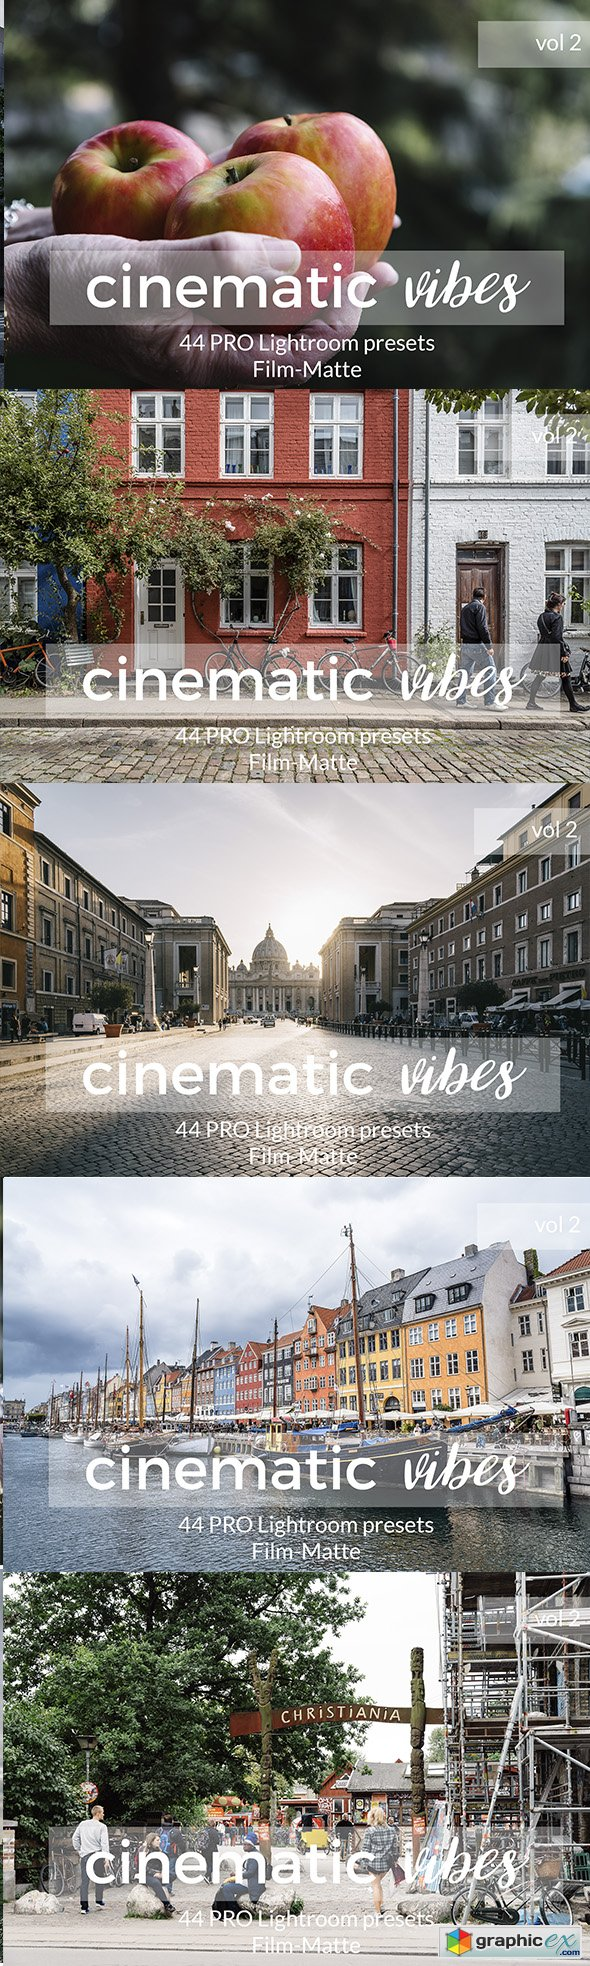 Graphicriver Cinematic Vibes Vol 2 Lightroom Presets